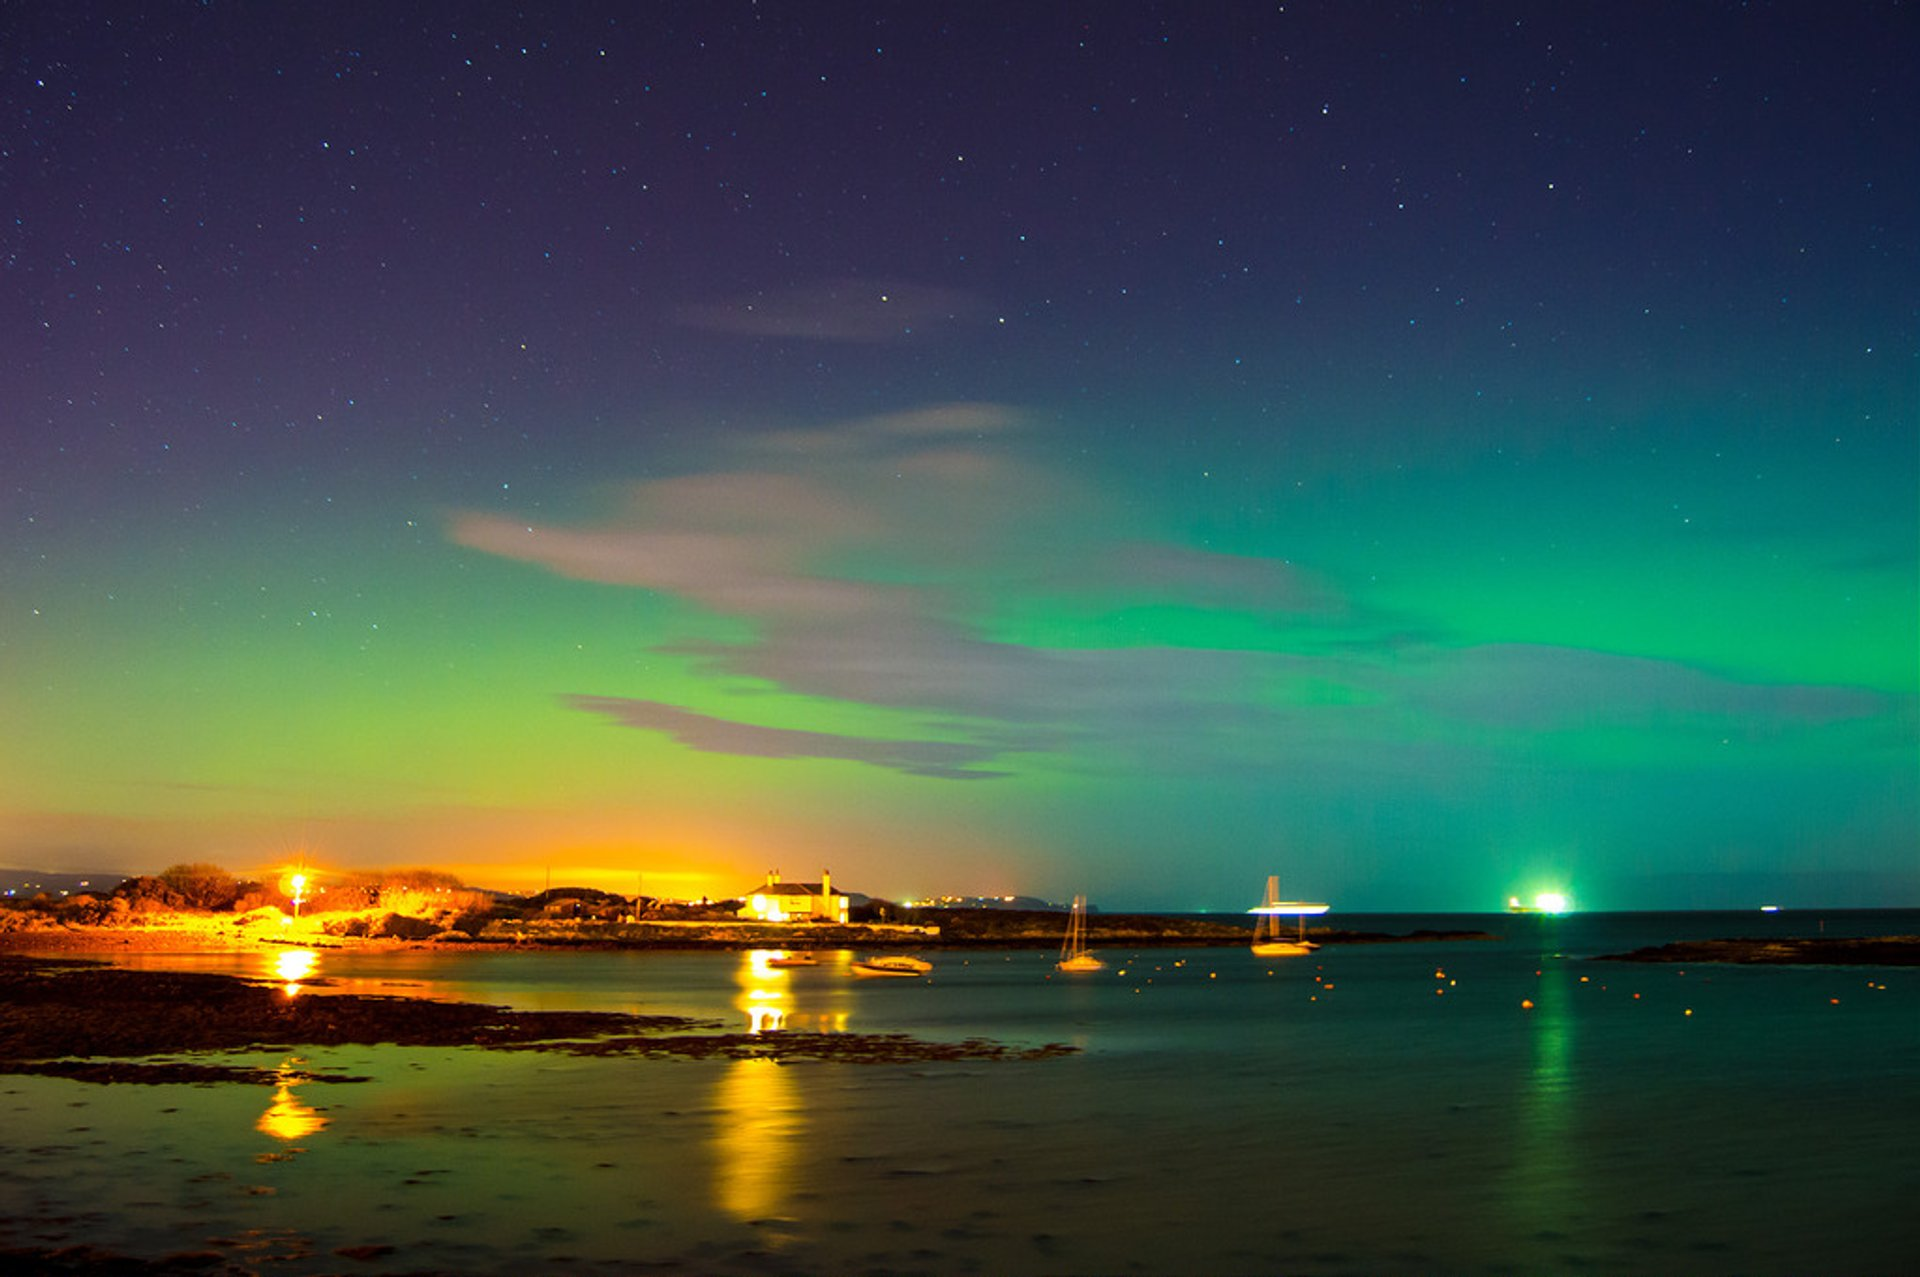 Nothern lights at Groomsport, County Down, Northern Ireland 2019